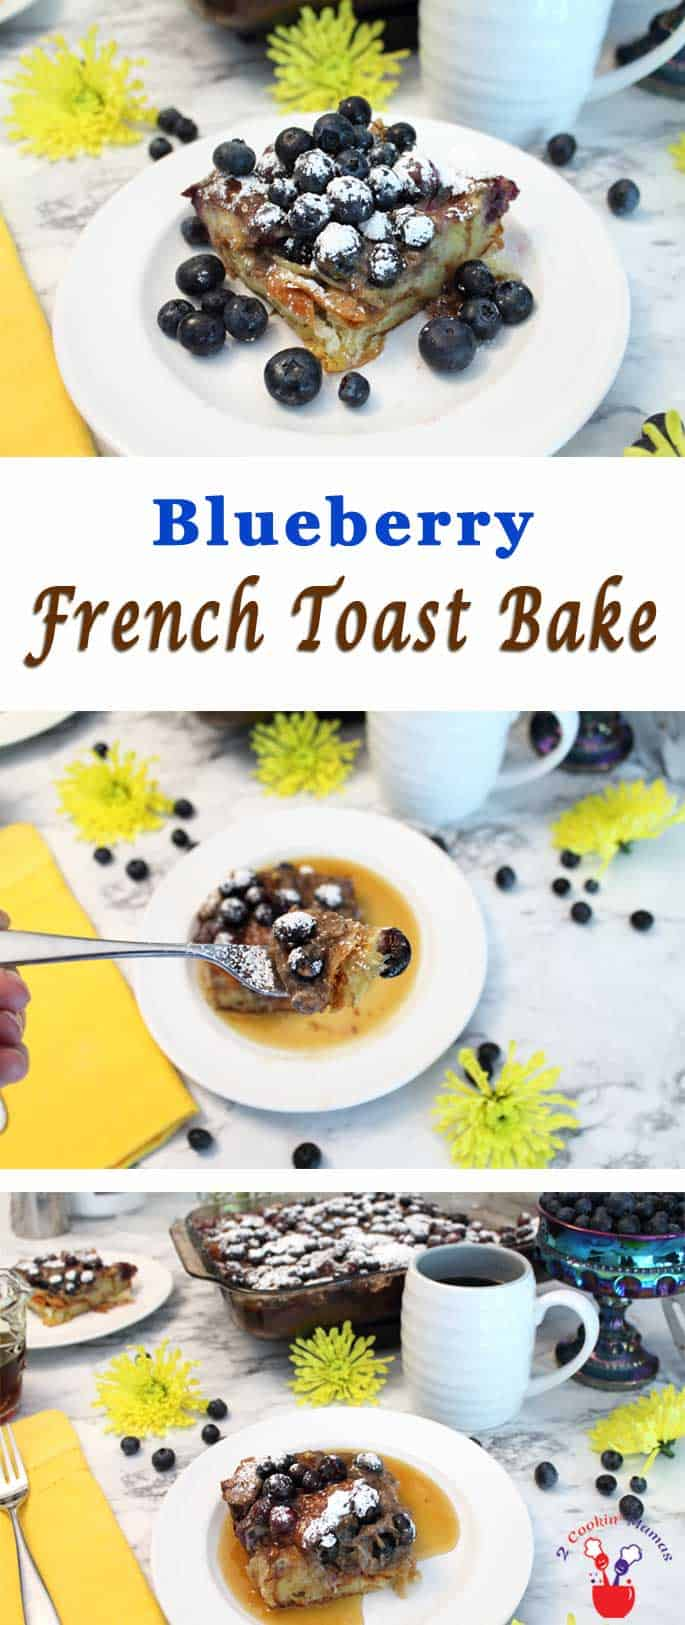 Blueberry French Toast Bake | 2 Cookin Mamas Our Blueberry French Toast Bake makes breakfast as easy as 1-2-3. Layer croissants, blueberries, yogurt & eggs in dish, chill & bake. A sweet morning treat!